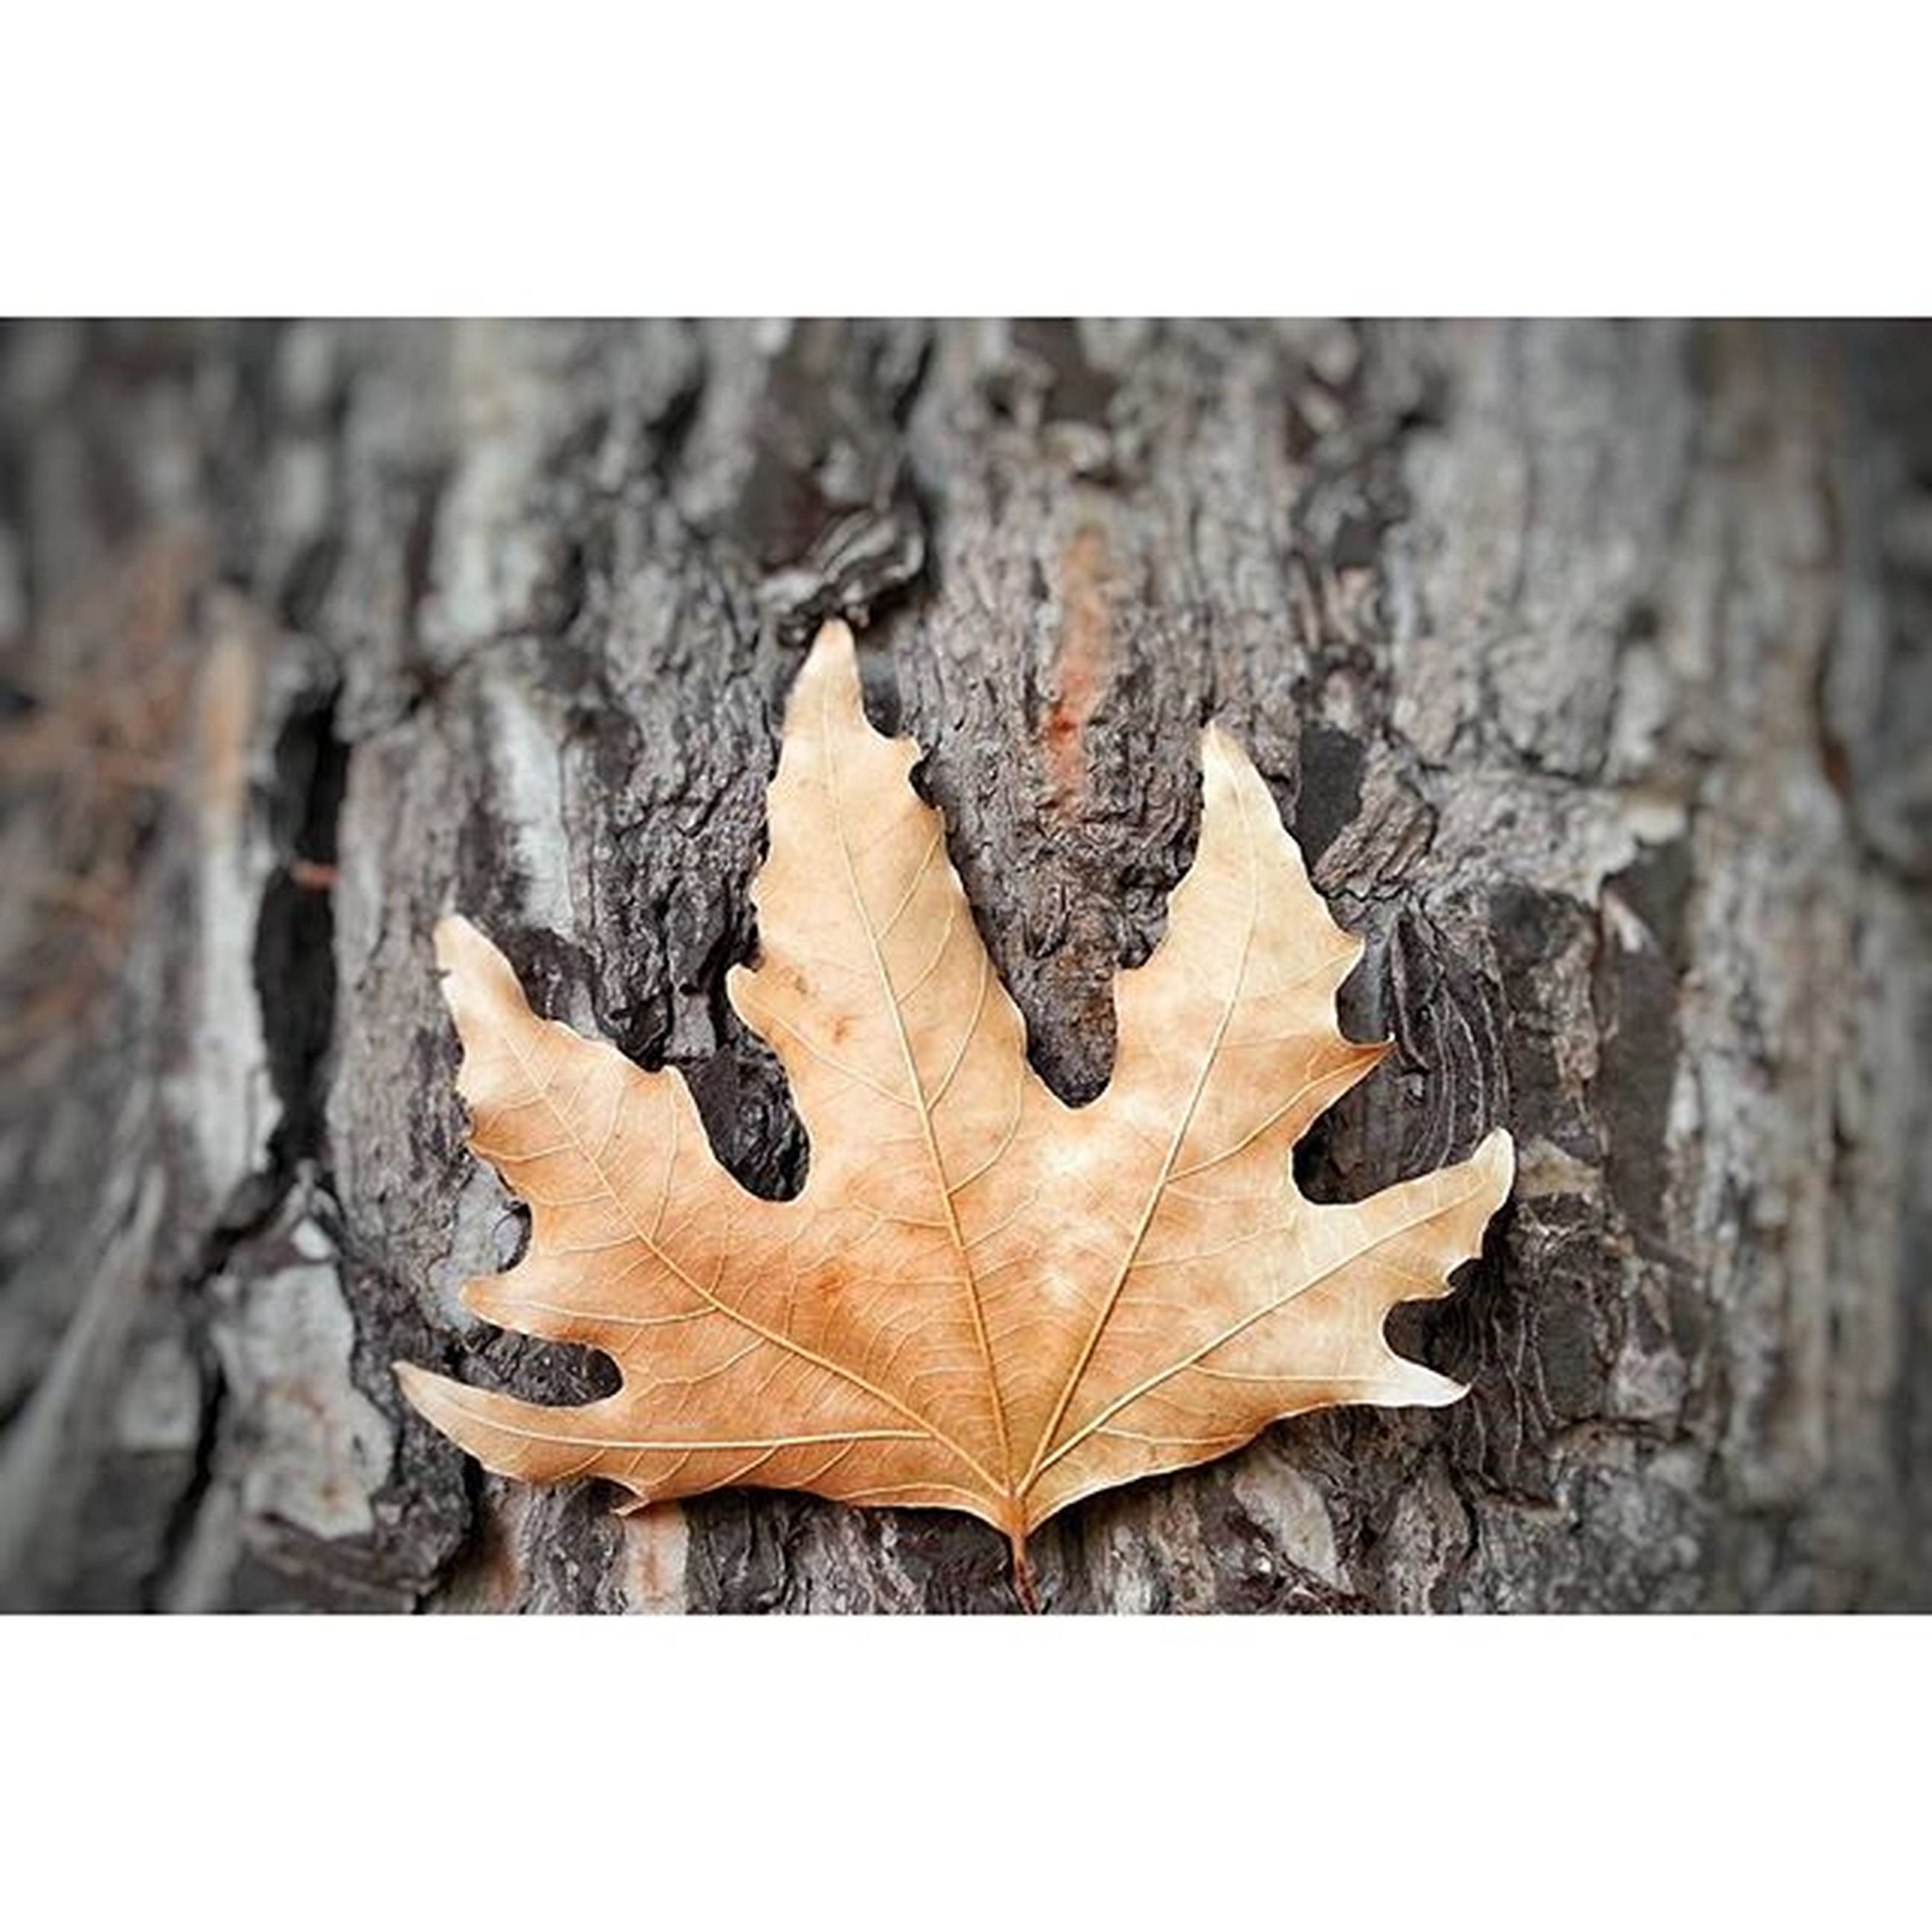 transfer print, auto post production filter, close-up, autumn, dry, leaf, natural pattern, nature, change, textured, pattern, yellow, leaf vein, wood - material, season, outdoors, fragility, maple leaf, natural condition, no people